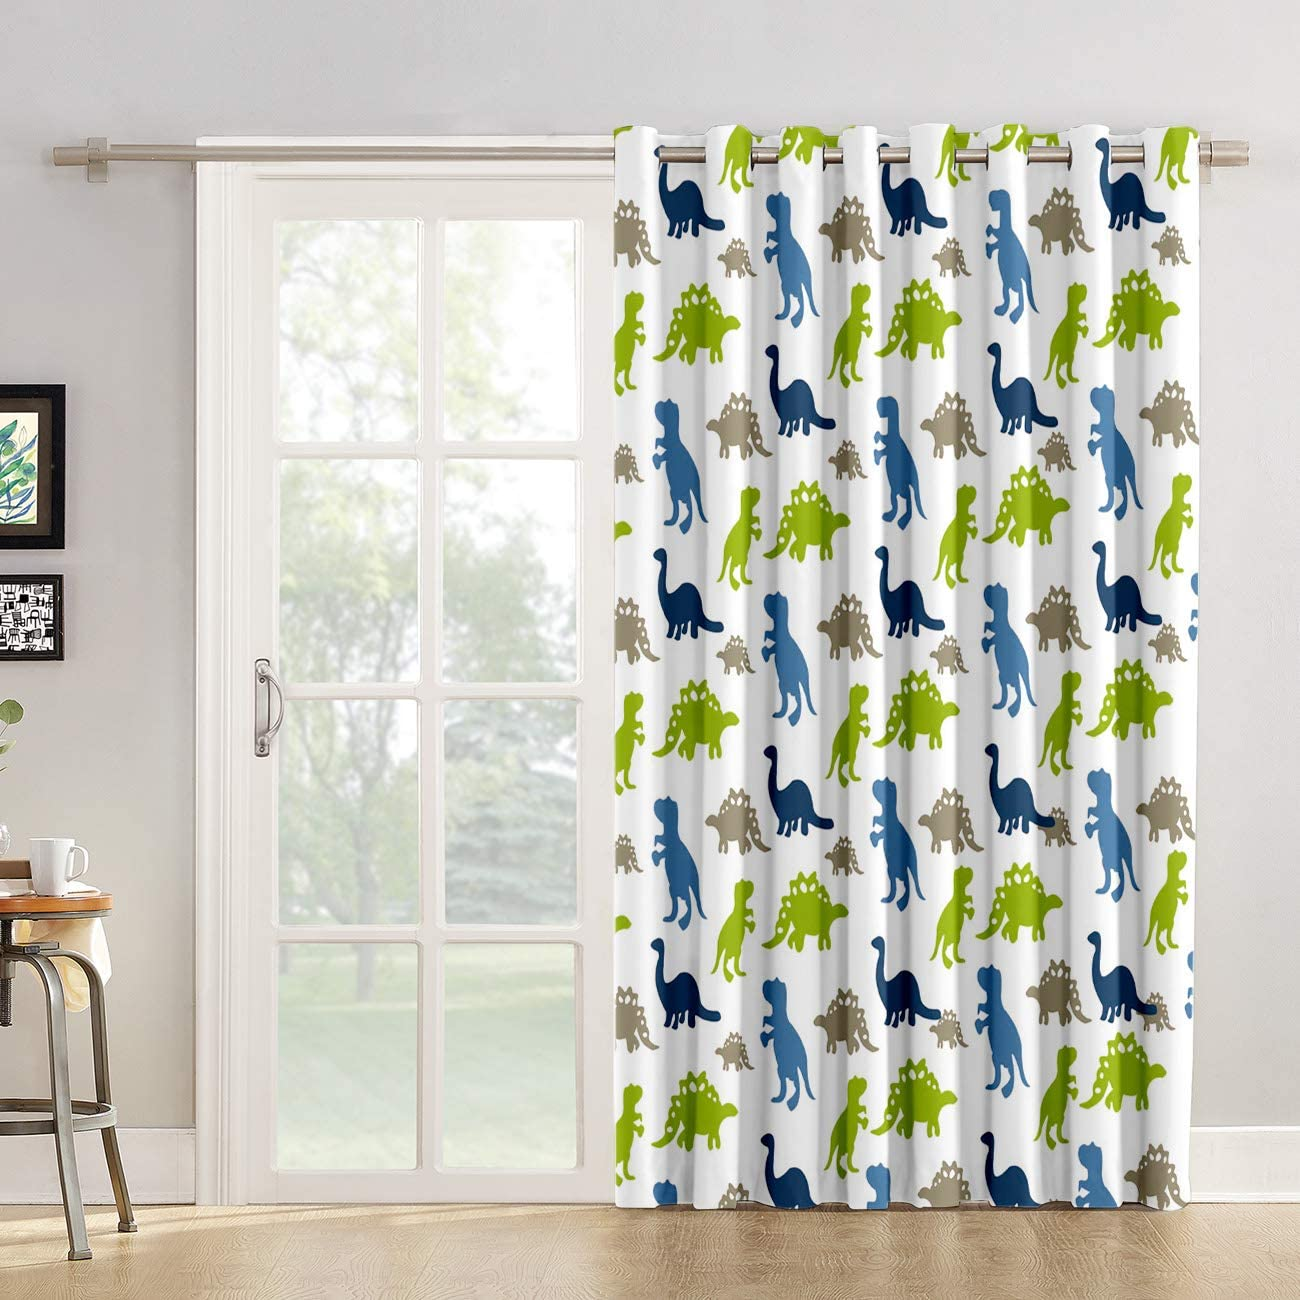 "Futuregrace Window Decor Dinosaur Blackout Curtains, Cute Cartoon Dinosaur Design Livingroom Bedroom Darkening Window Draperies & Curtains for Sliding Glass Door Home Office Decor 52"" W by 45"" L"